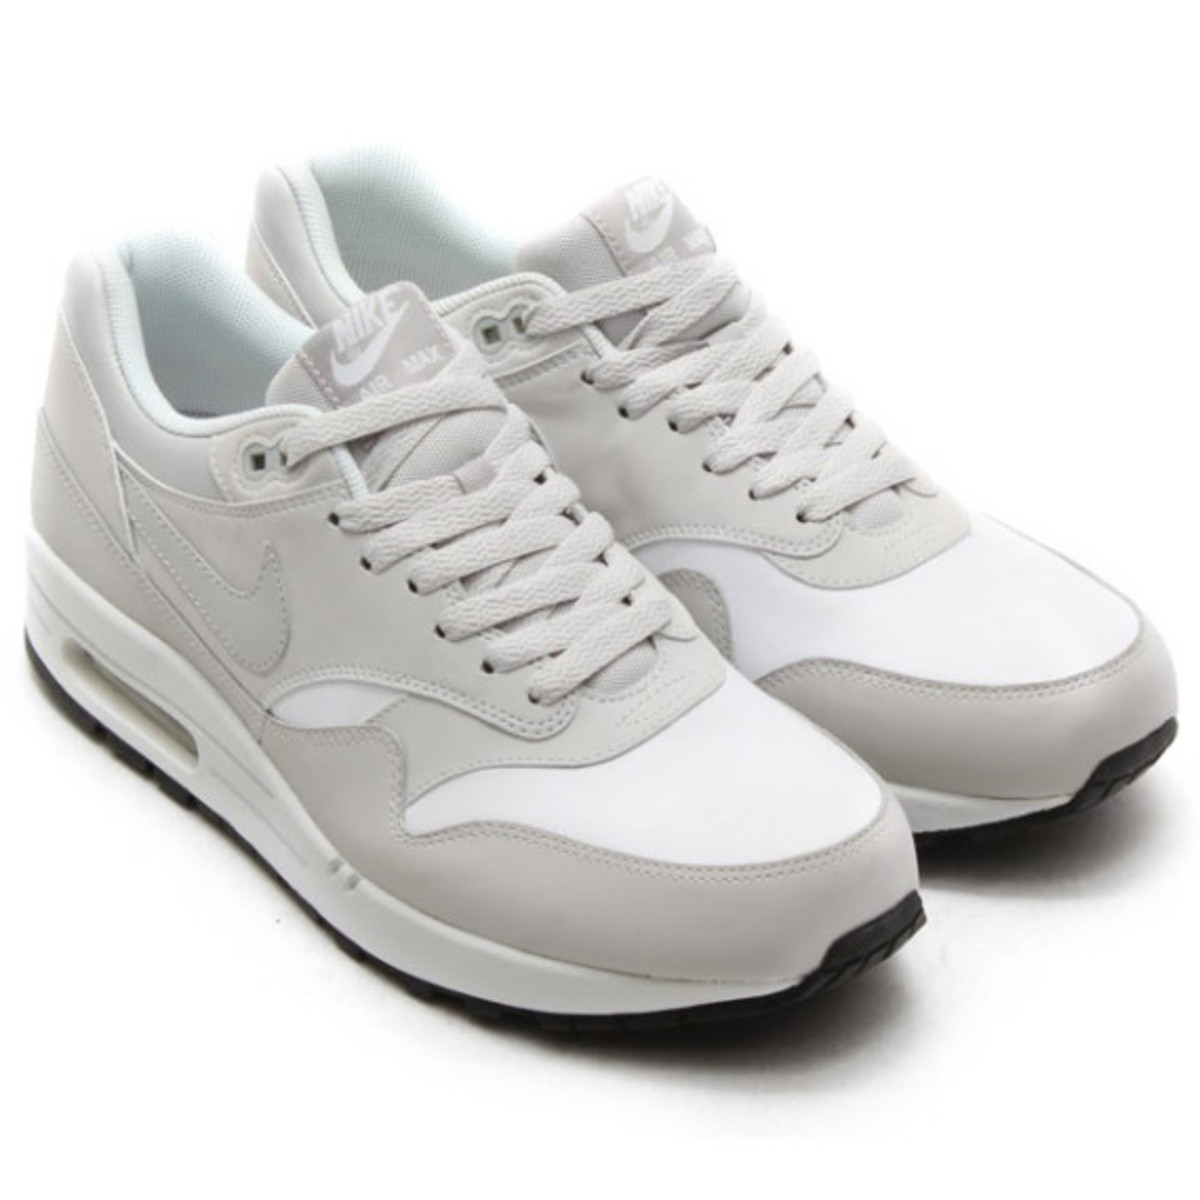 """Nike Air Max 1 """"Leather"""" - Spring 2015 - 4"""